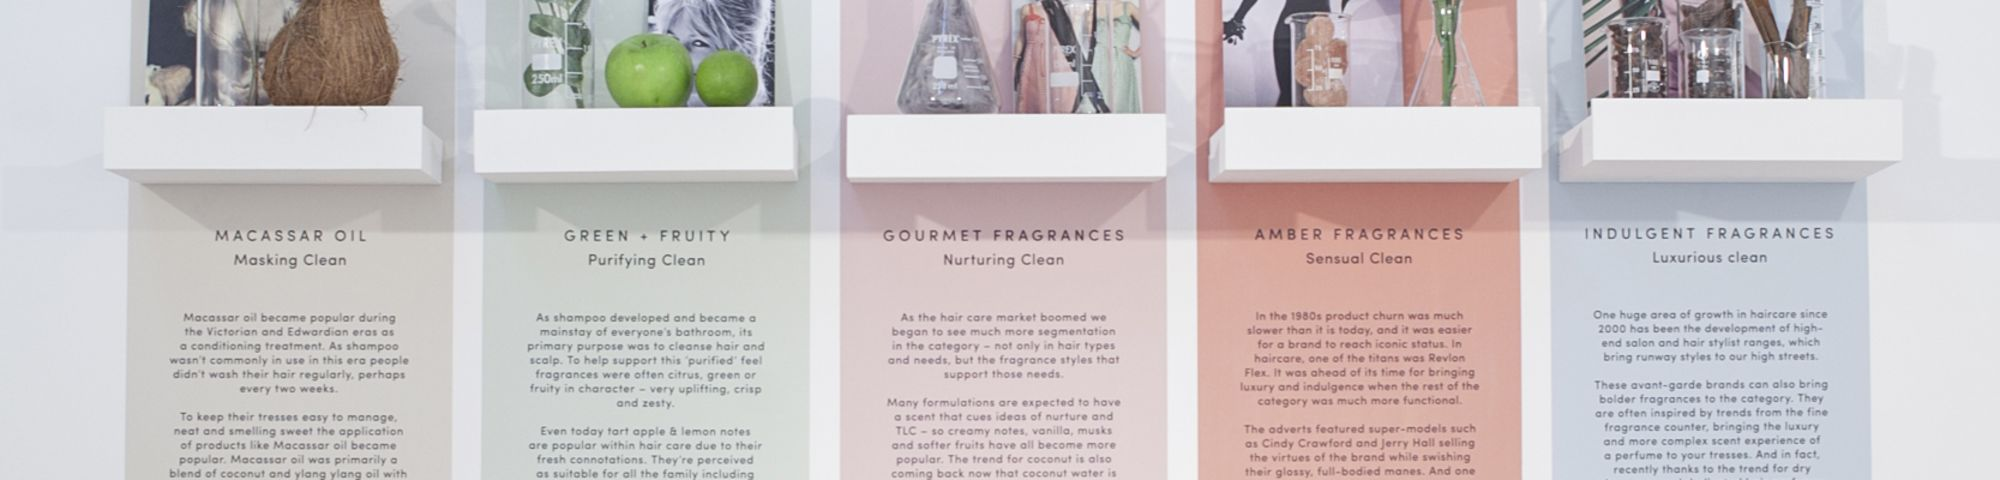 Five shelves with cosmetic products and description of the ingredients